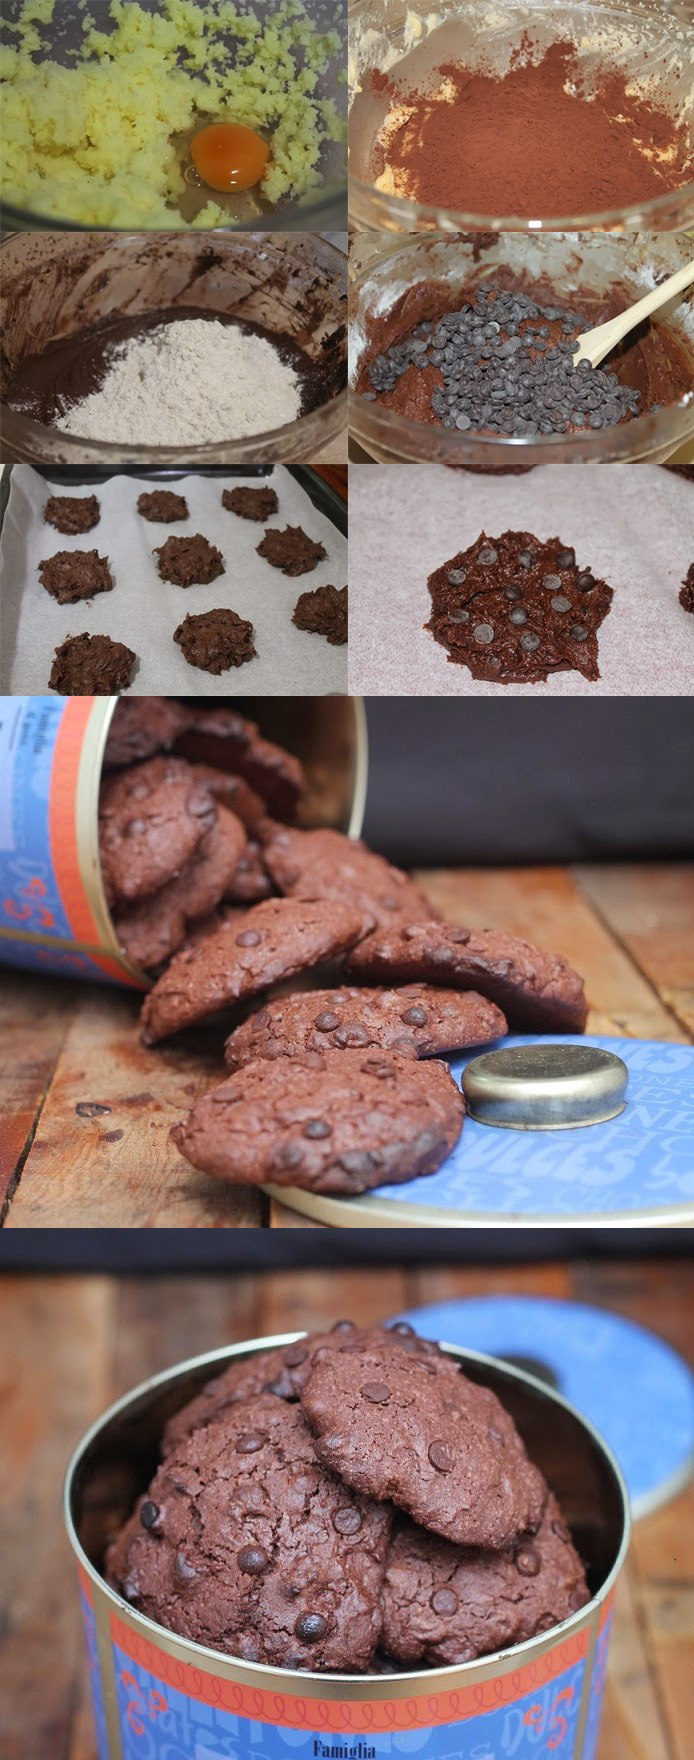 galletas-chocolate-chips-pecados-reposteria-1